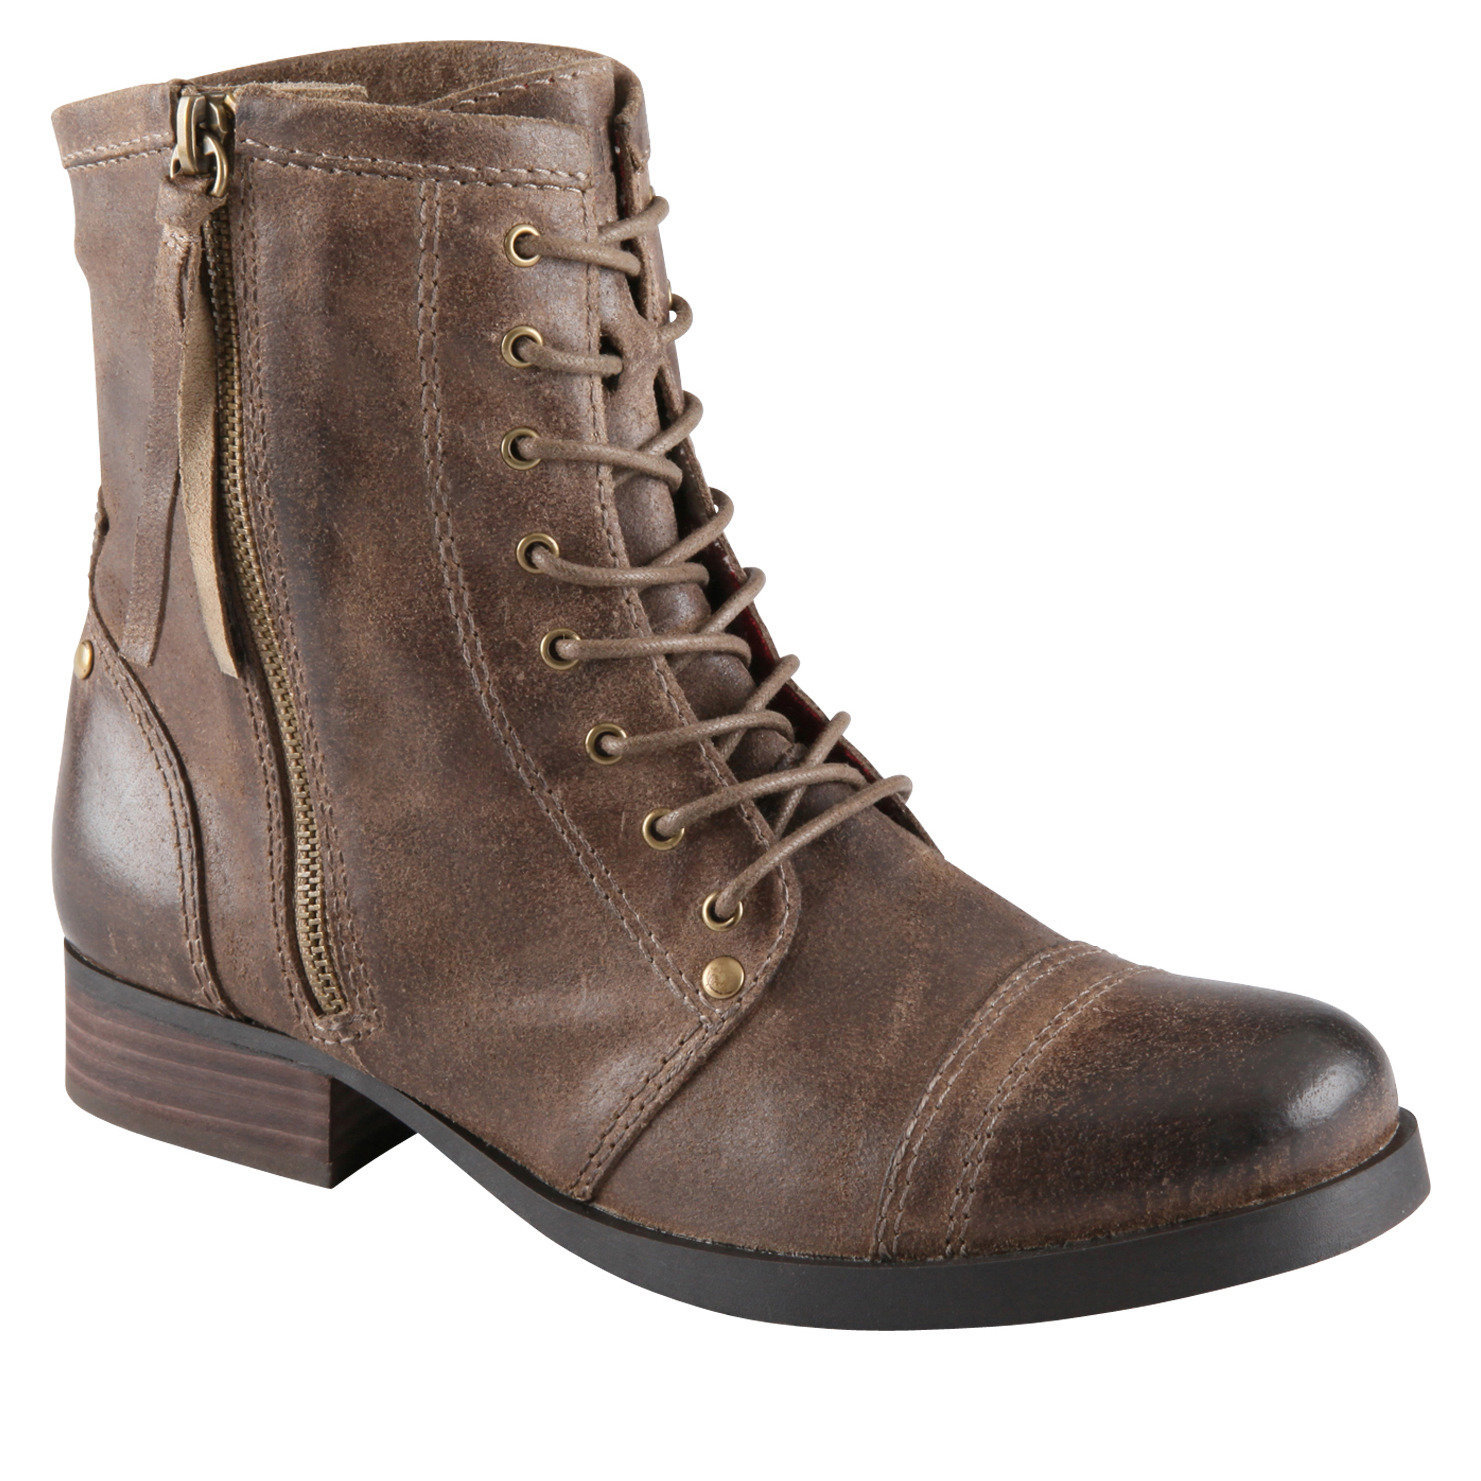 Perfect DINOA  Women39s Ankle Boots Boots For Sale At ALDO Shoes